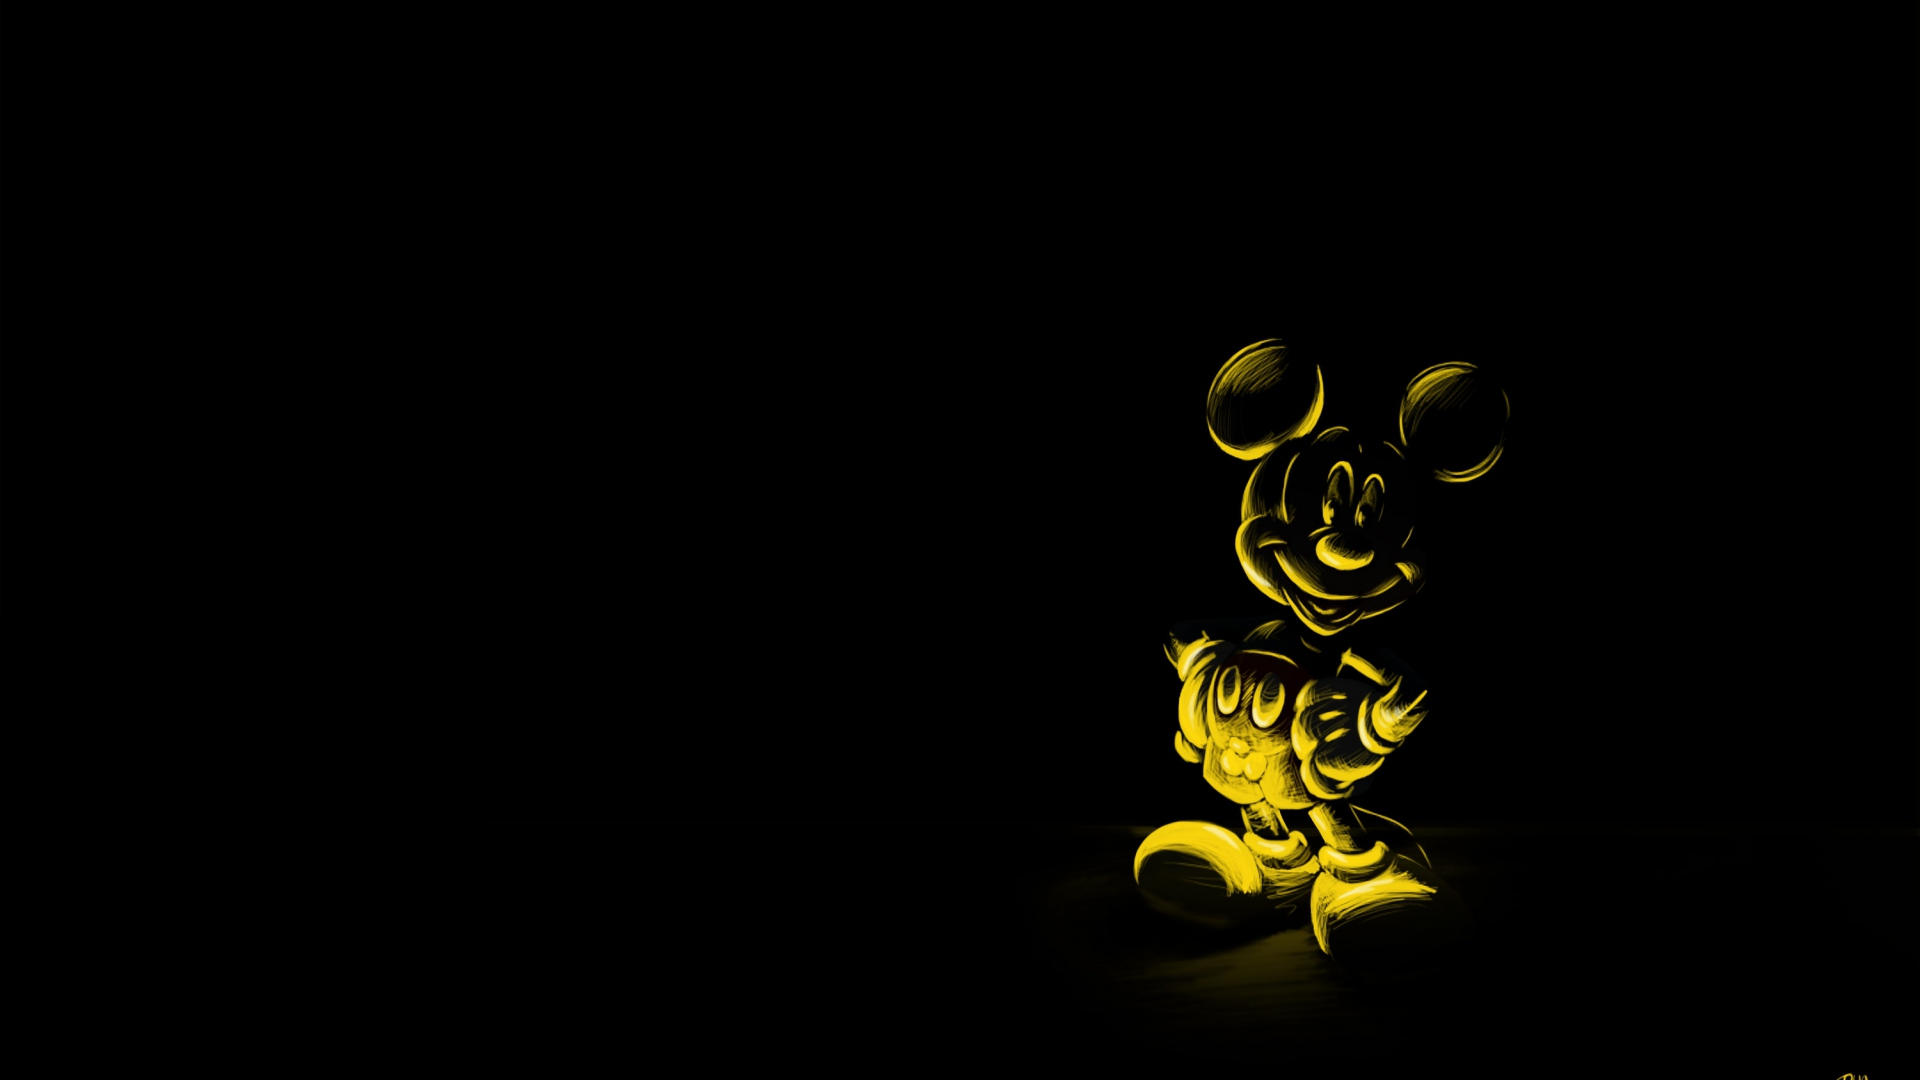 Character Mickey mouse Mouse Wallpaper Background Full HD 1080p 1920x1080